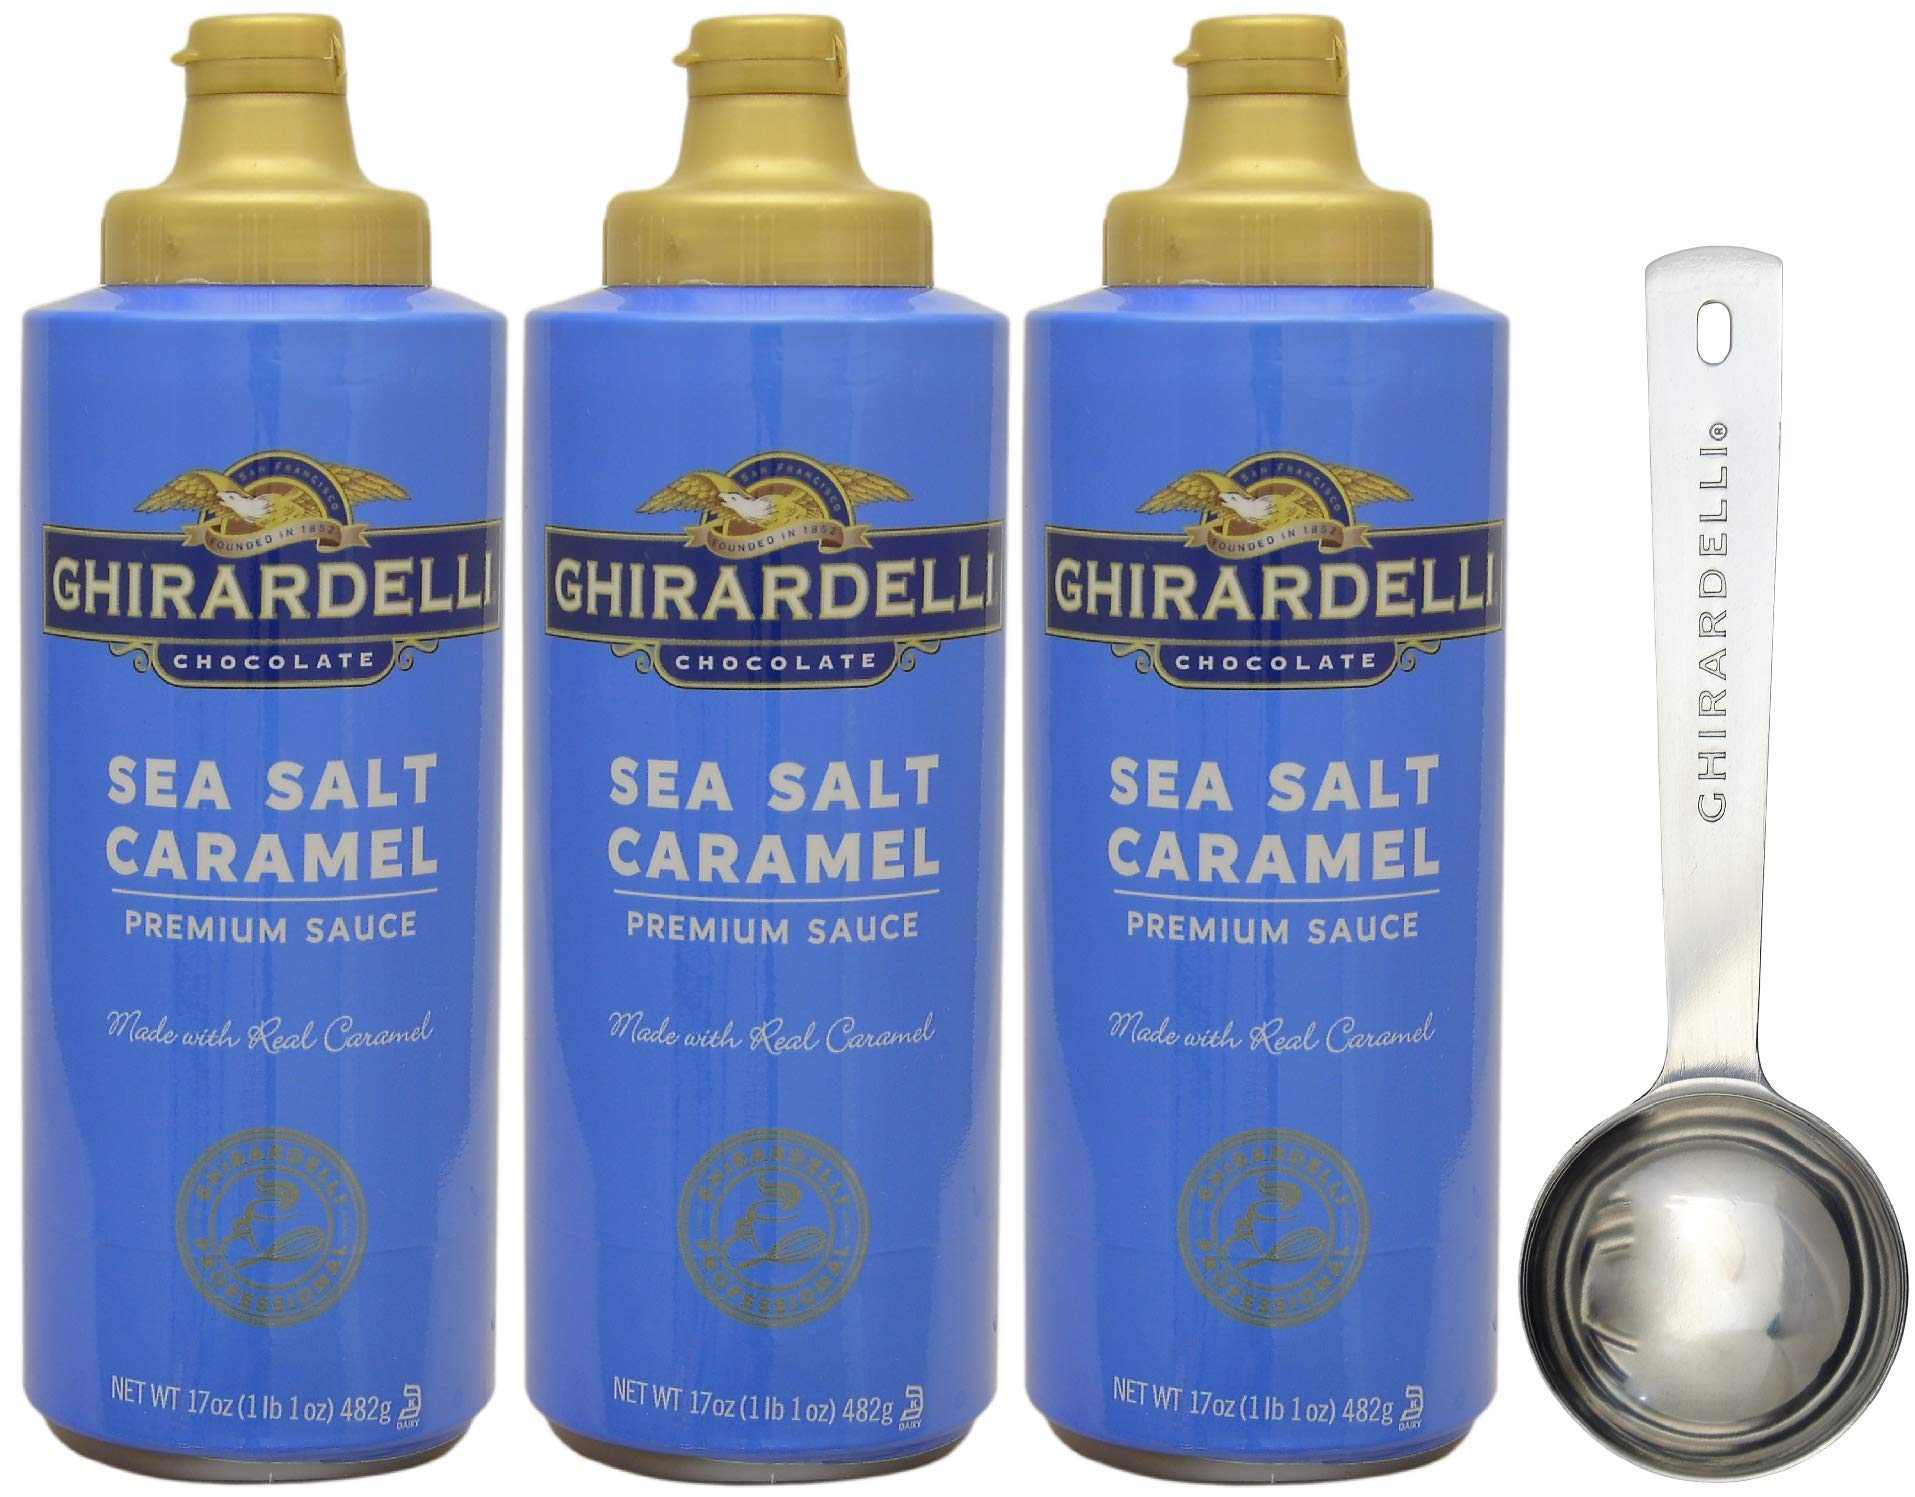 Ghirardelli Salted Caramel Sauce Squeeze Bottle, 17 Ounce (Pack 3) - with Limited Edition Measuring Spoon